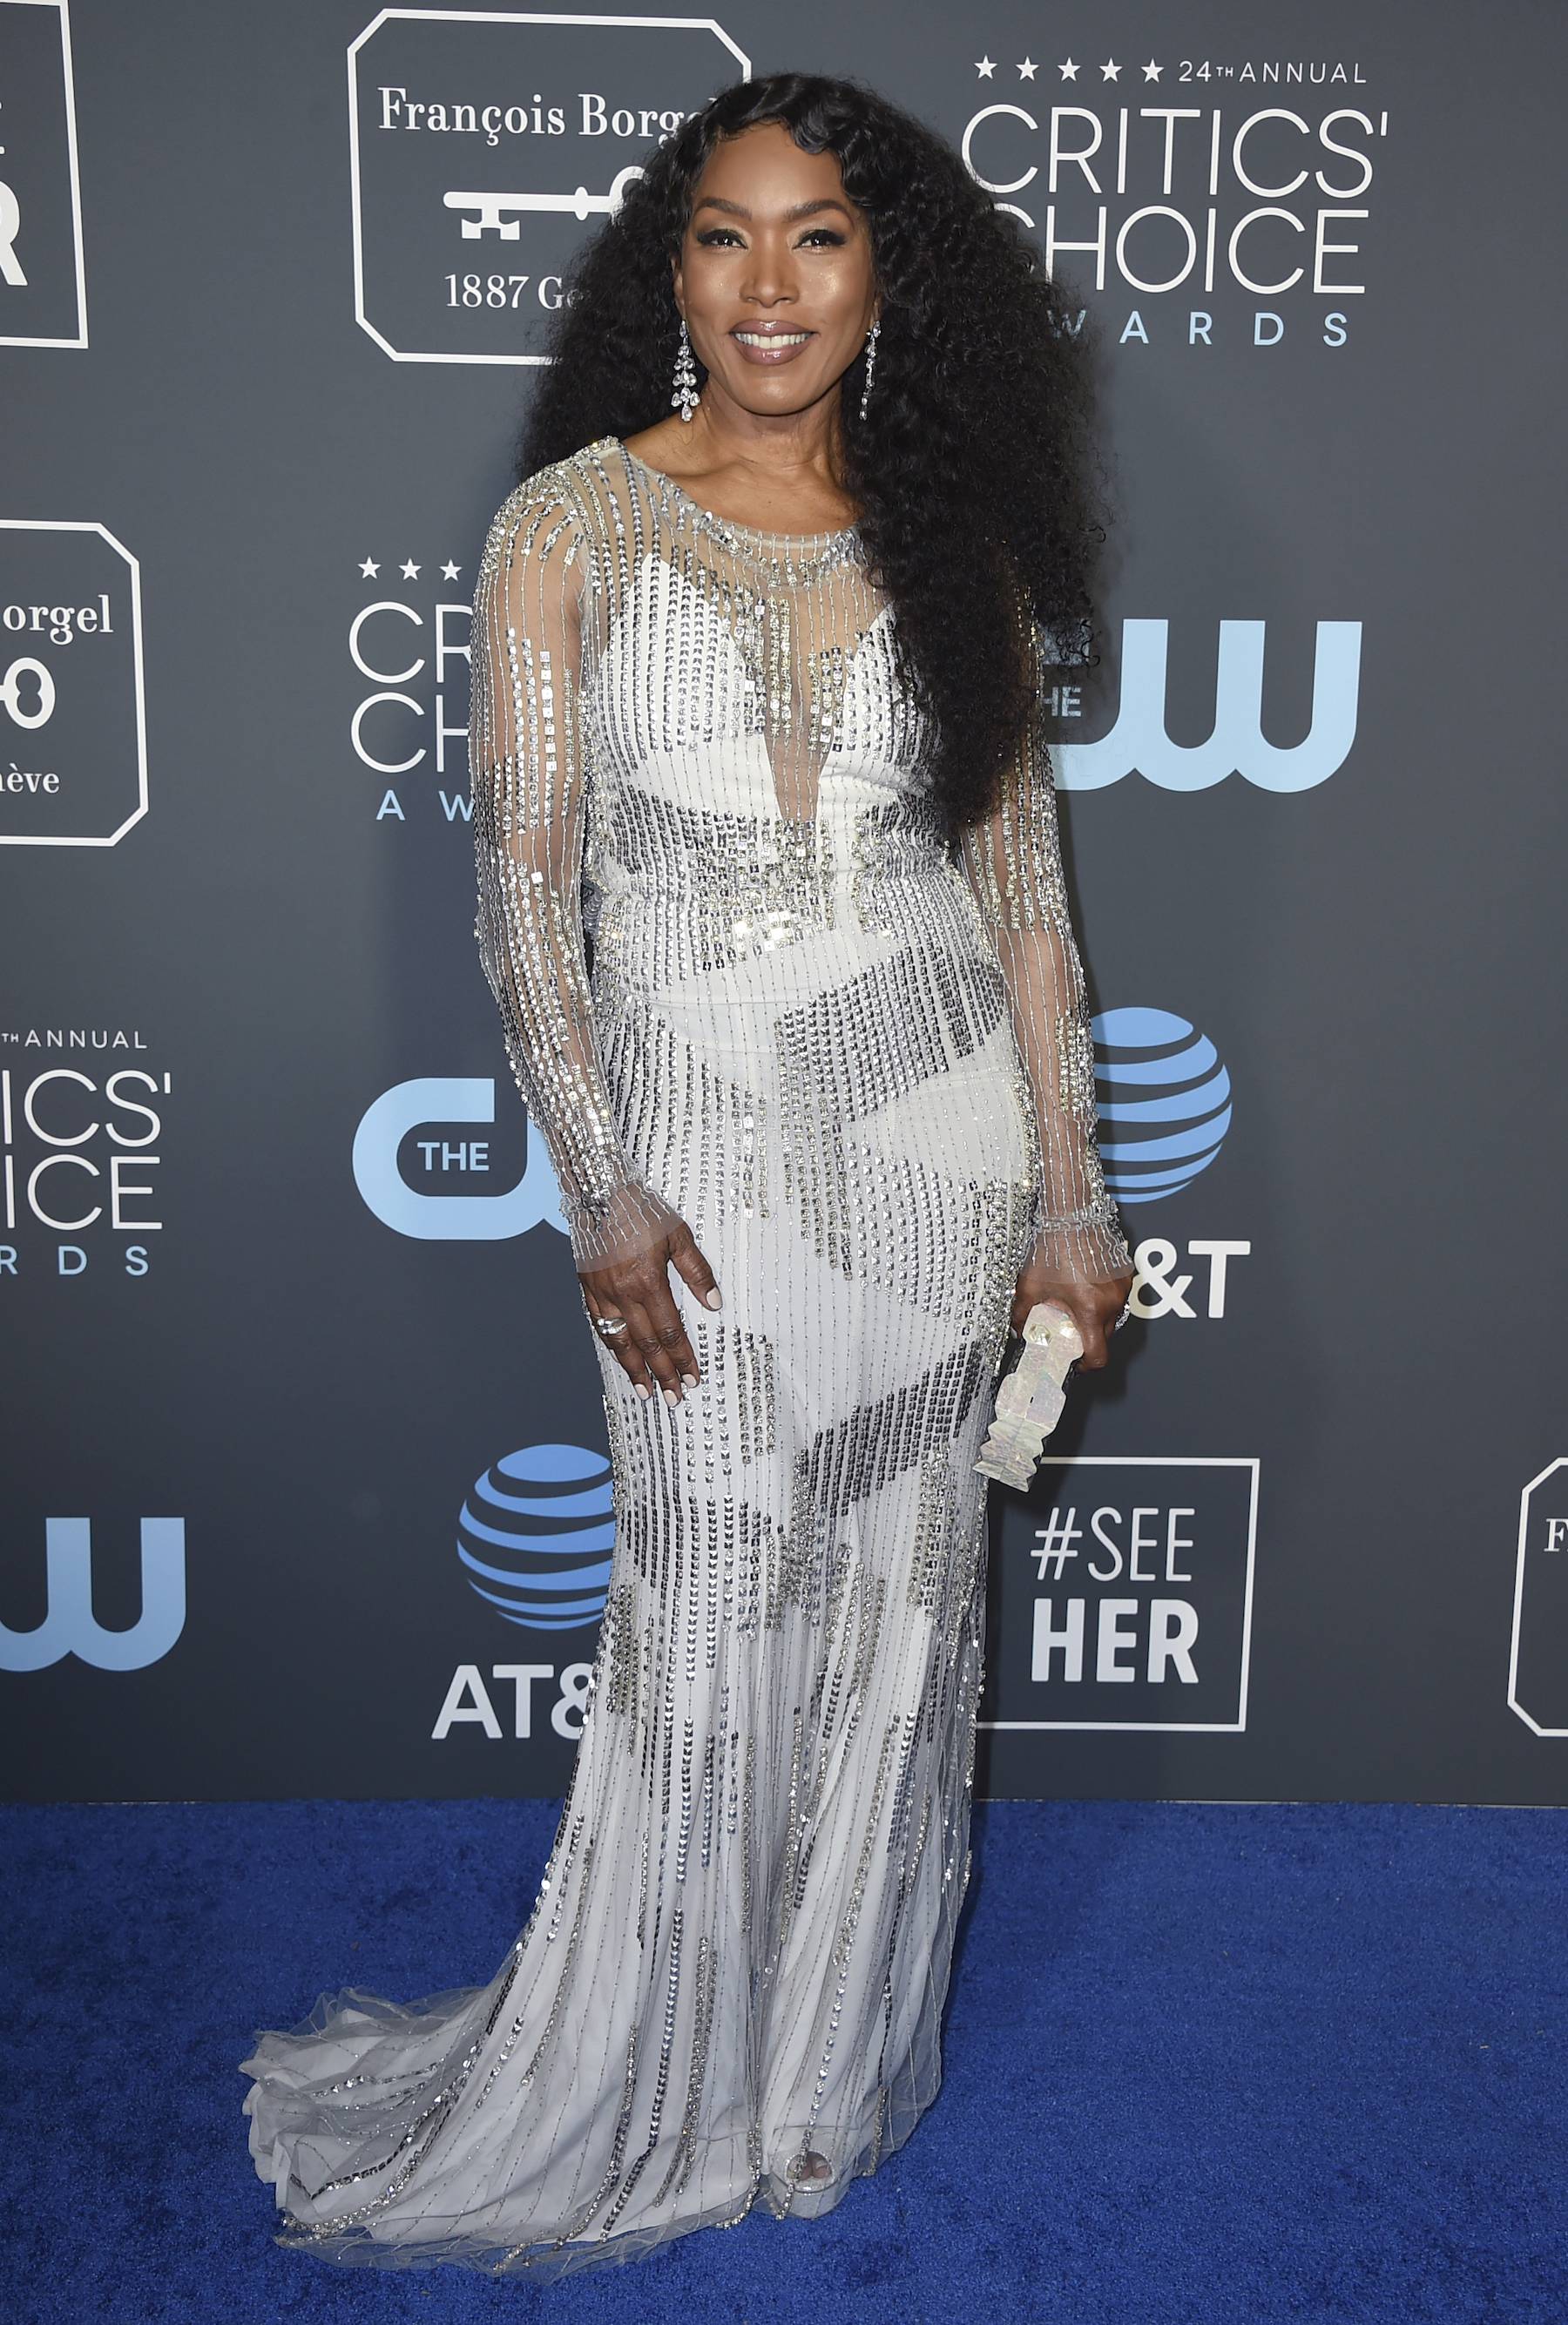 "<div class=""meta image-caption""><div class=""origin-logo origin-image ap""><span>AP</span></div><span class=""caption-text"">Angela Bassett arrives at the 24th annual Critics' Choice Awards on Sunday, Jan. 13, 2019, at the Barker Hangar in Santa Monica, Calif. (Jordan Strauss/Invision/AP)</span></div>"